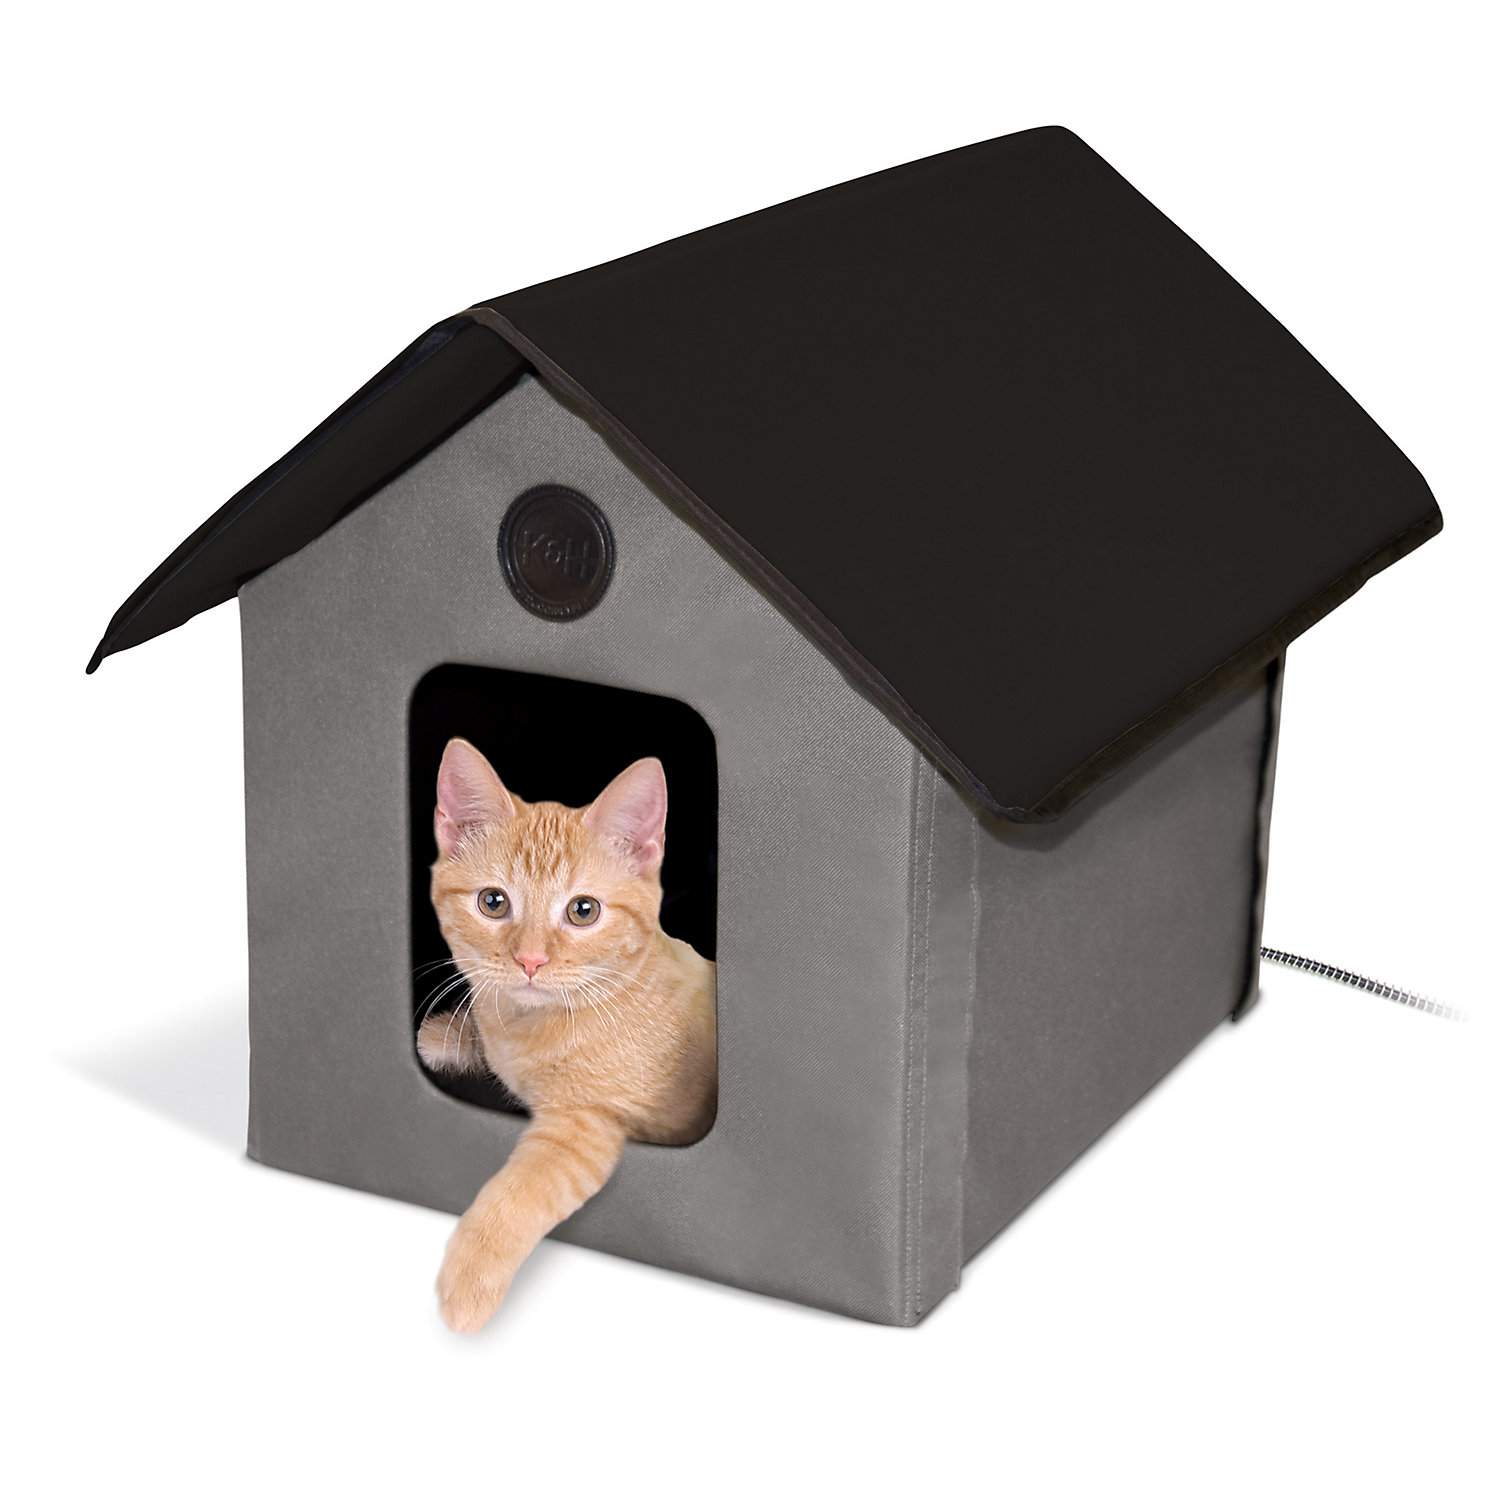 KH Gray and Black Outdoor Heated Cat House